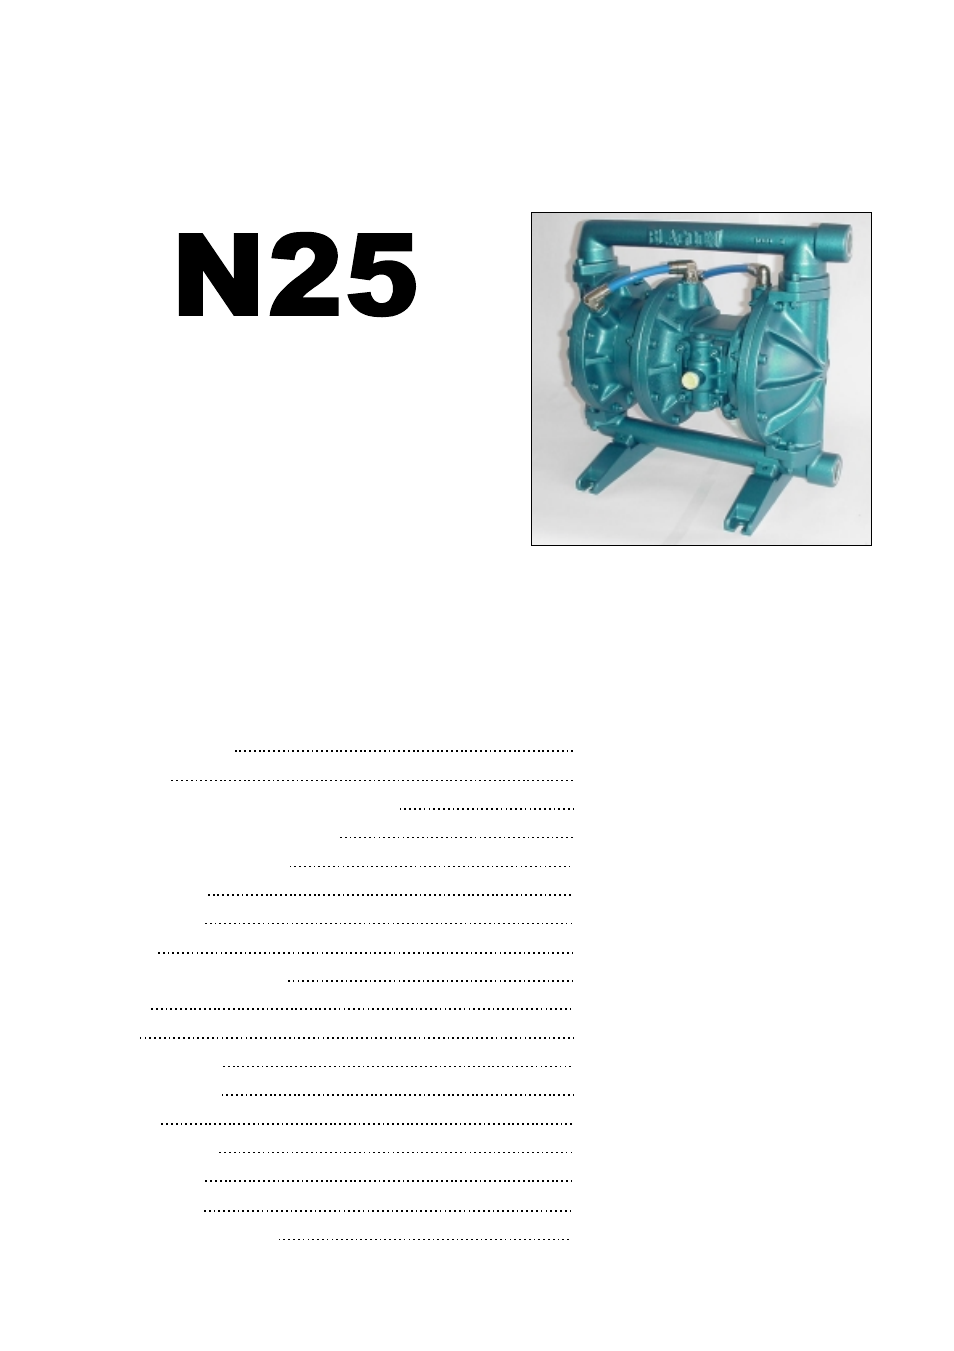 Versa matic n25 air operated air operated double diaphragm pump user versa matic n25 air operated air operated double diaphragm pump user manual 12 pages ccuart Choice Image